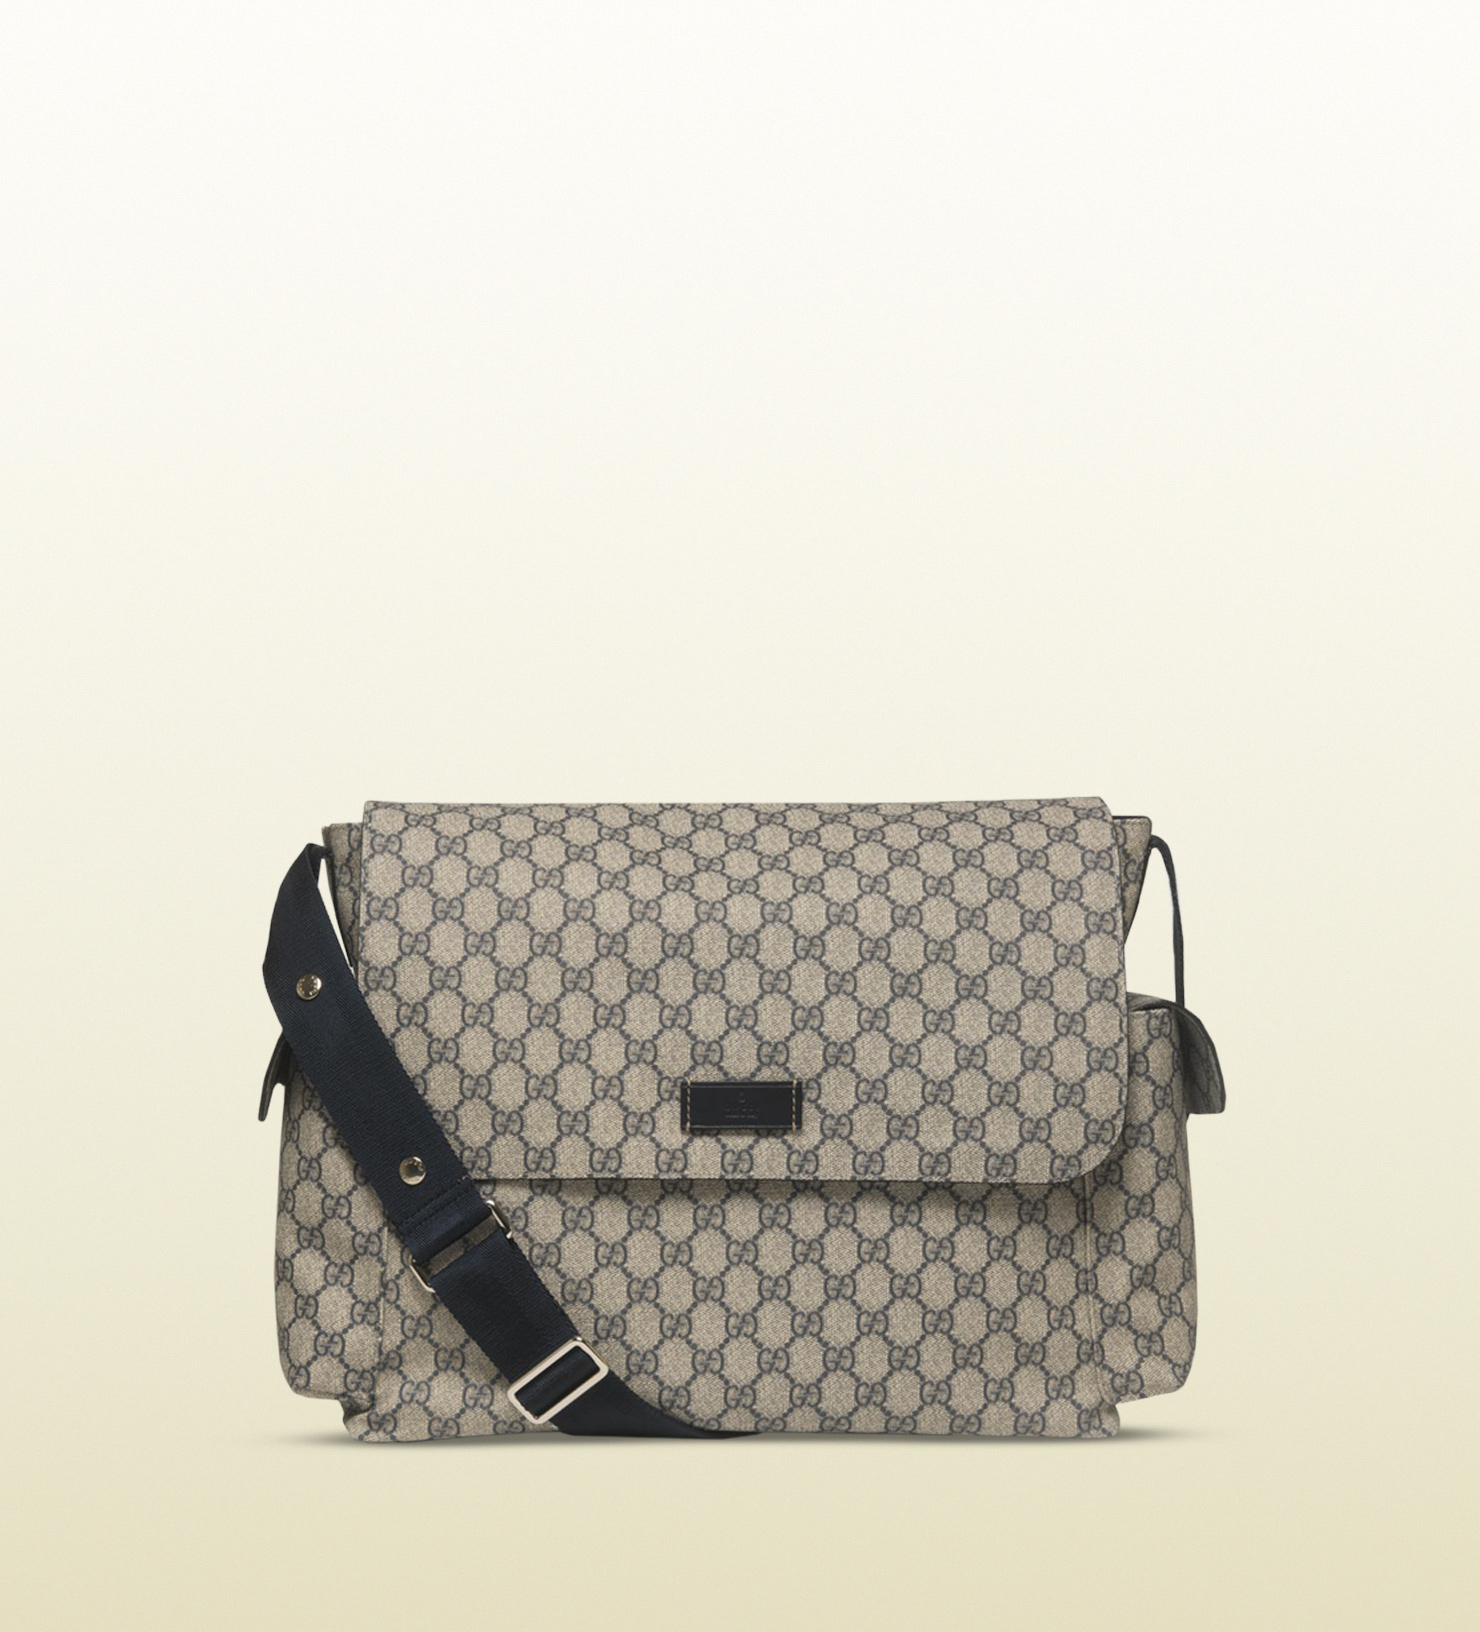 c8e7085b6ea Lyst - Gucci Gg Plus Diaper Bag in Natural for Men